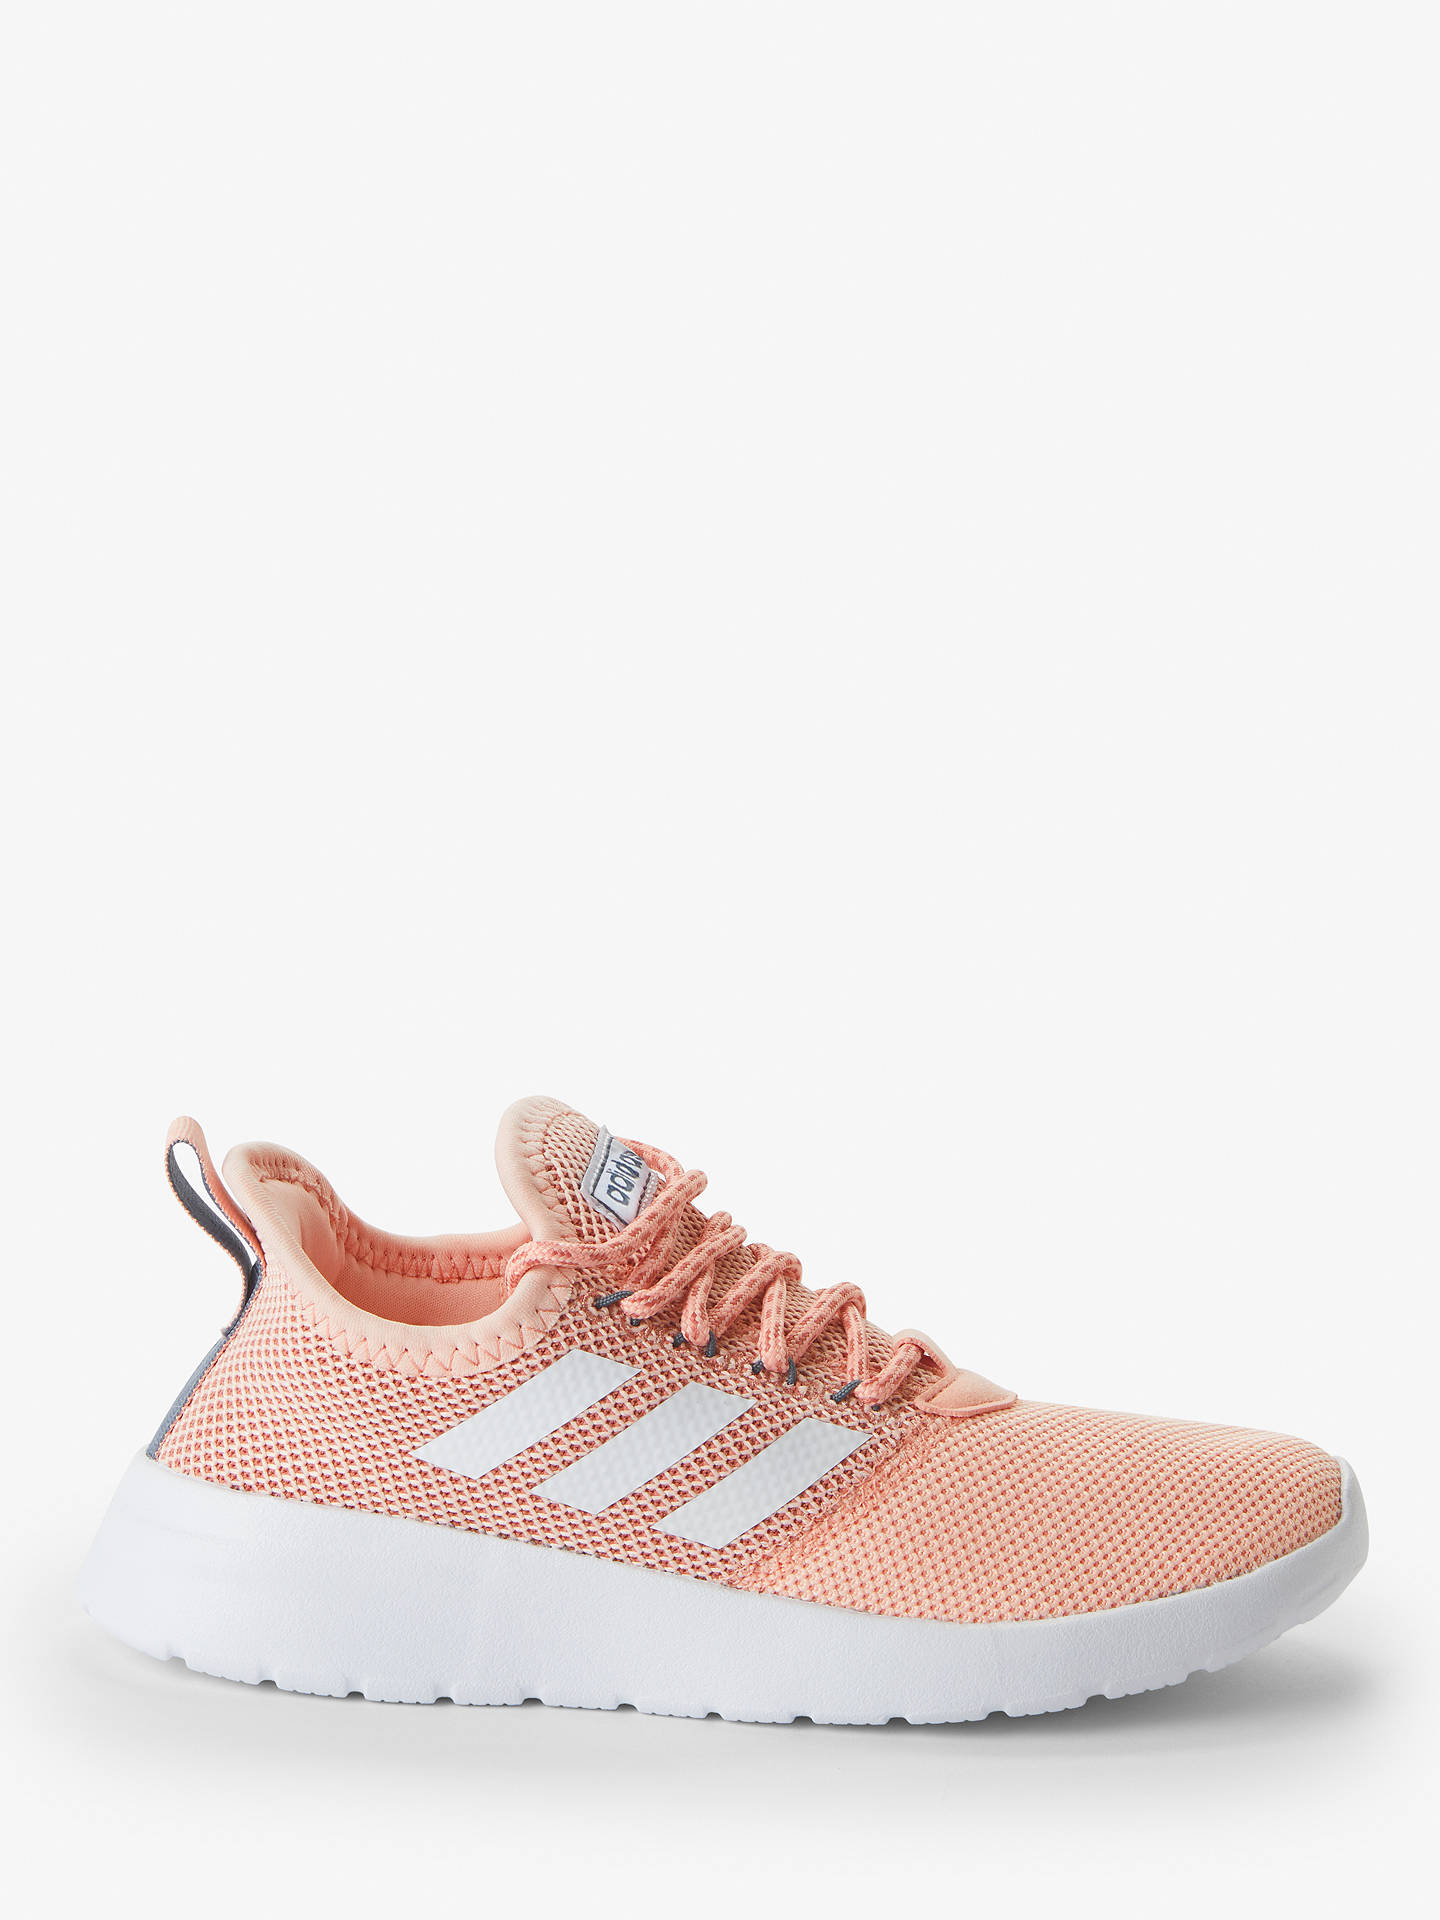 grande vente b96ed 0ac9d adidas Lite Racer RBN Women's Running Shoes, Glow Pink/Cloud White/Onix